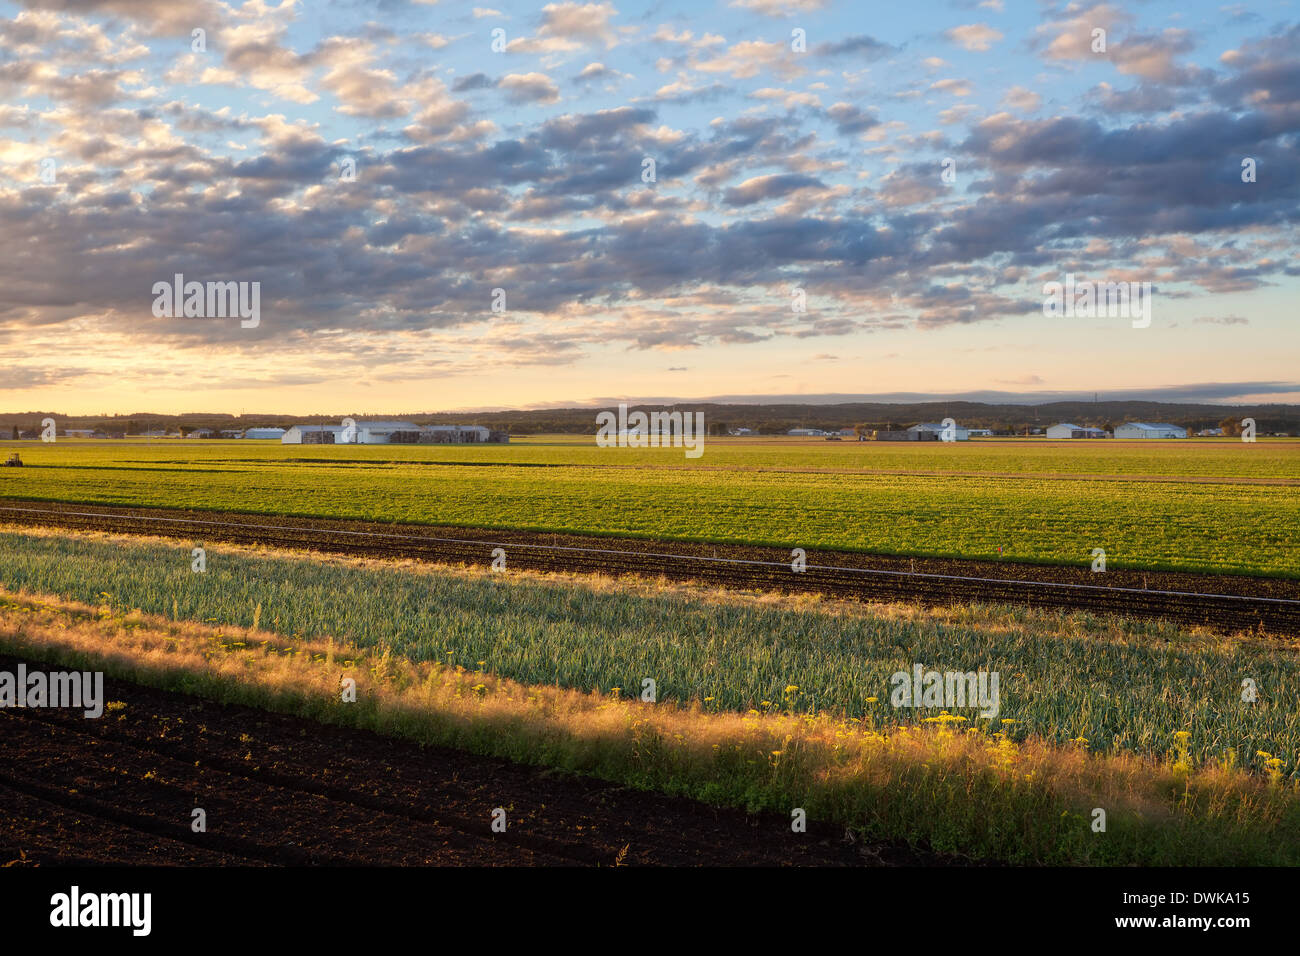 Farm fields (onion and carrot) in the early morning in the Holland Marsh. Bradford West Gwillimbury, Ontario, Canada. - Stock Image